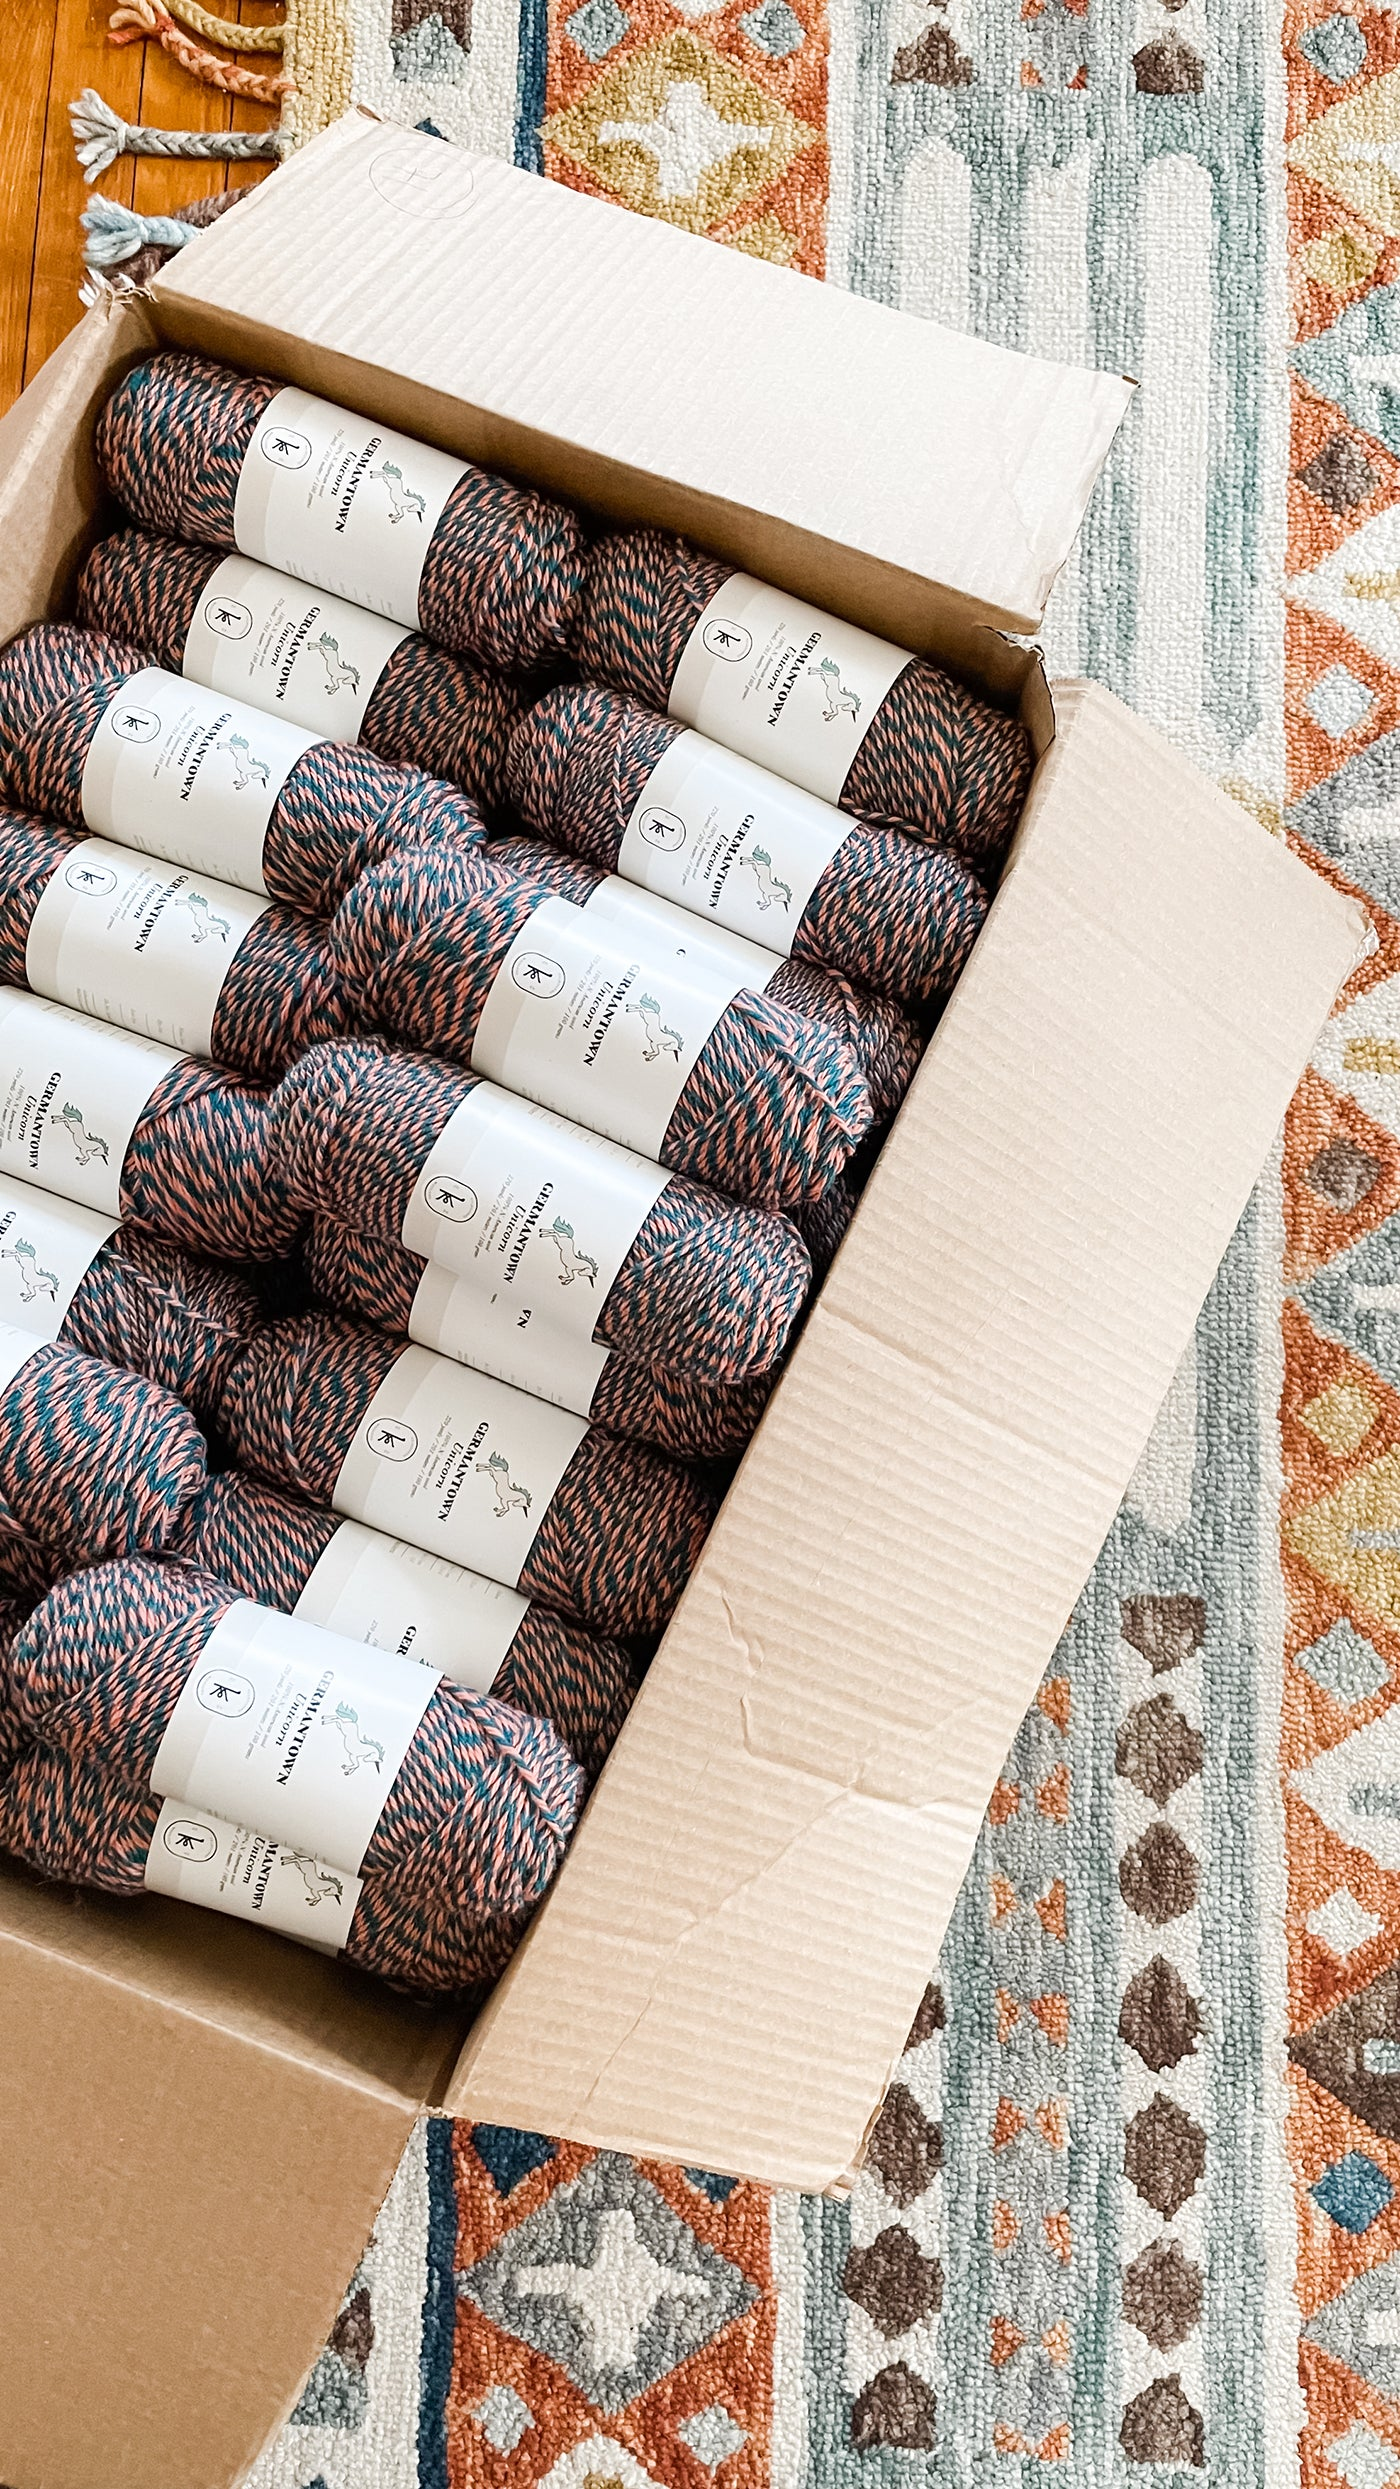 This is an image of a cardboard box full of skeins of yarn.